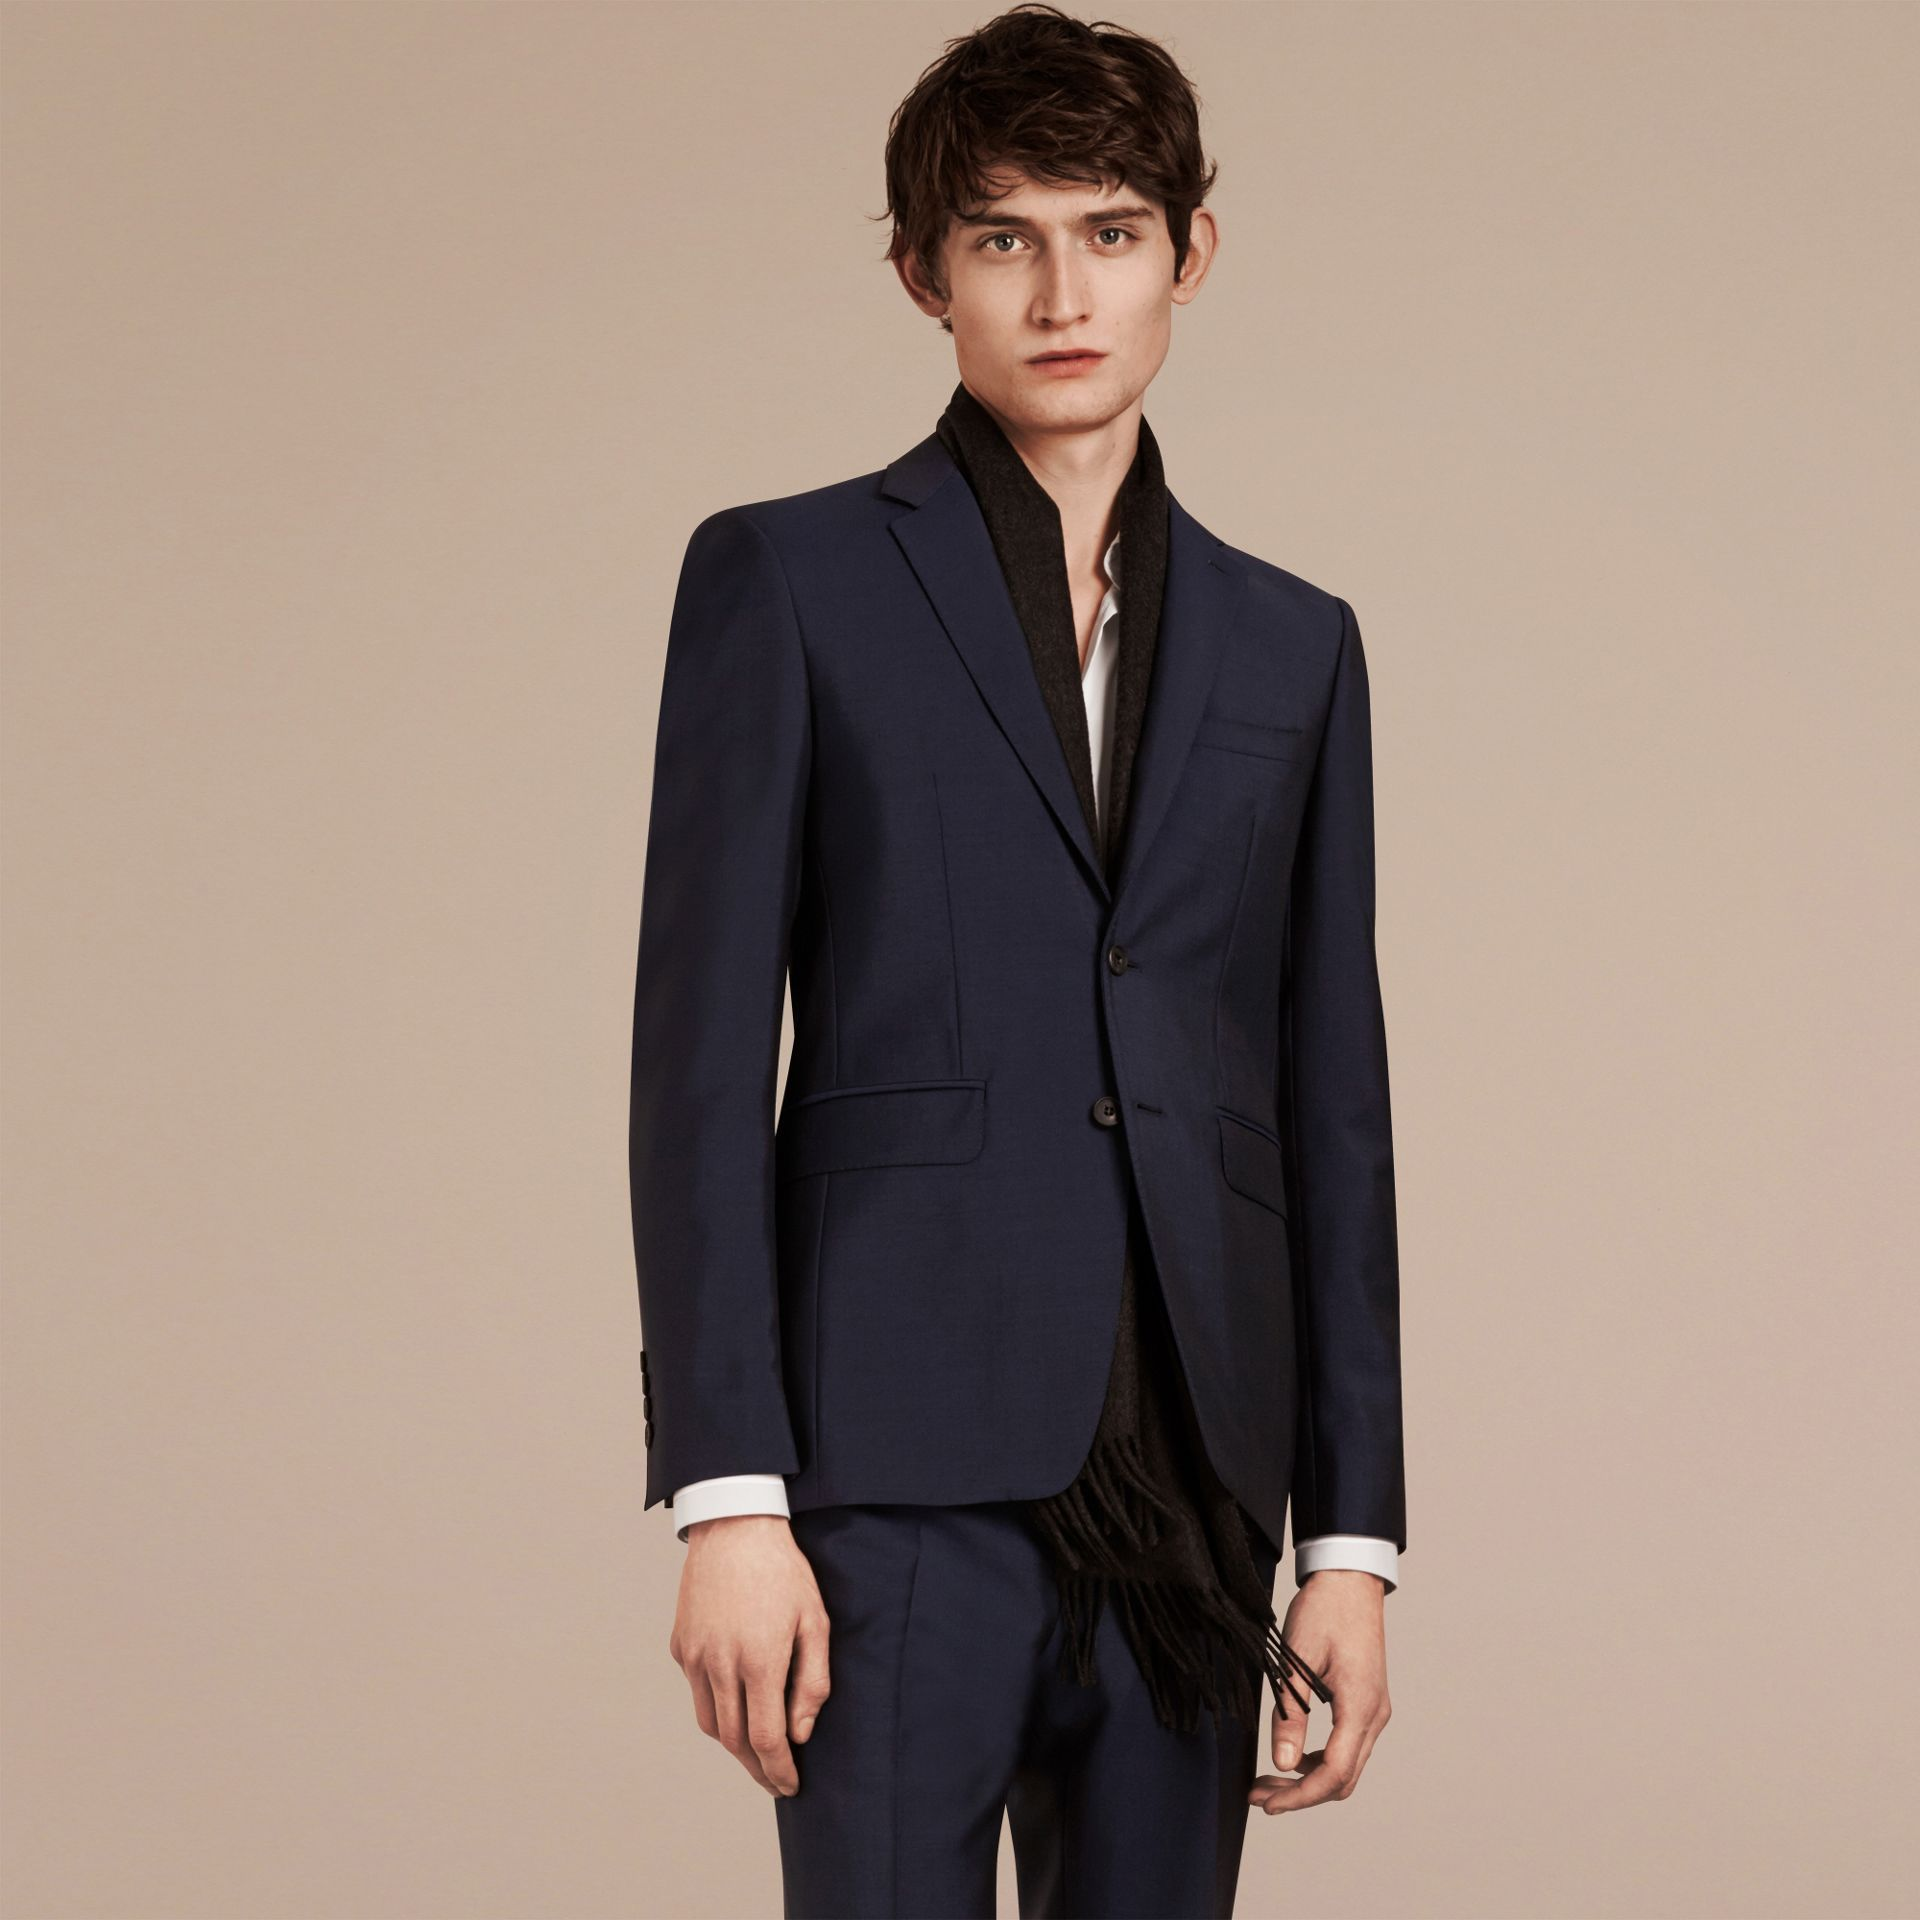 Slim Fit Wool Mohair Part-canvas Suit in Royal Navy - Men | Burberry - gallery image 3